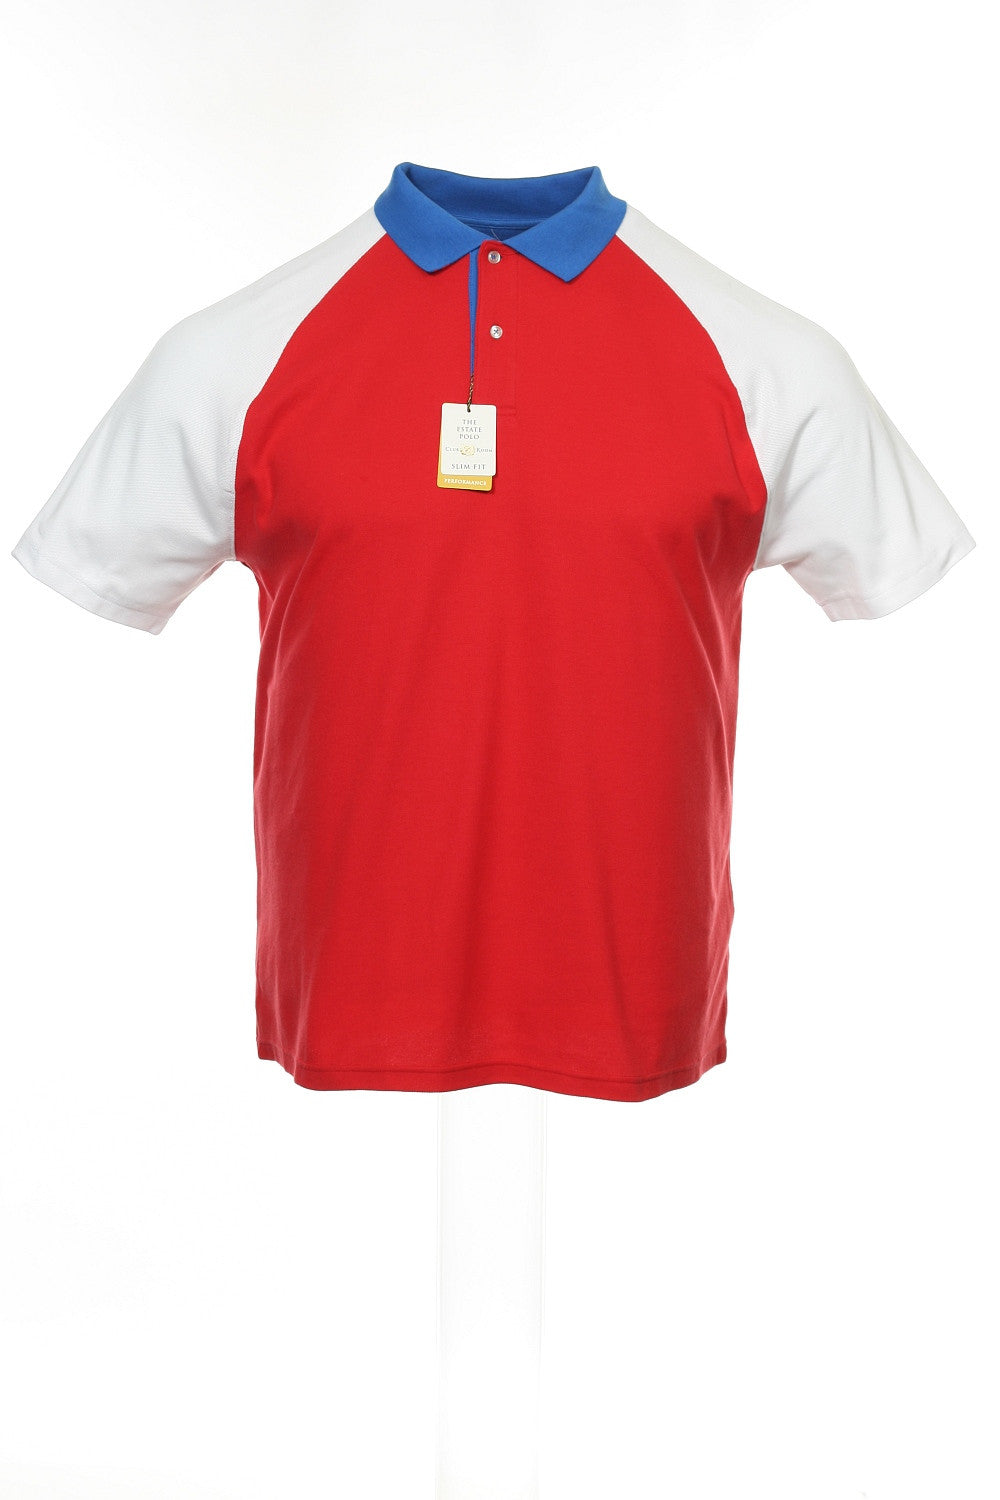 Club Room 'The Estate Polo' Mens Red Heather Polo Shirt